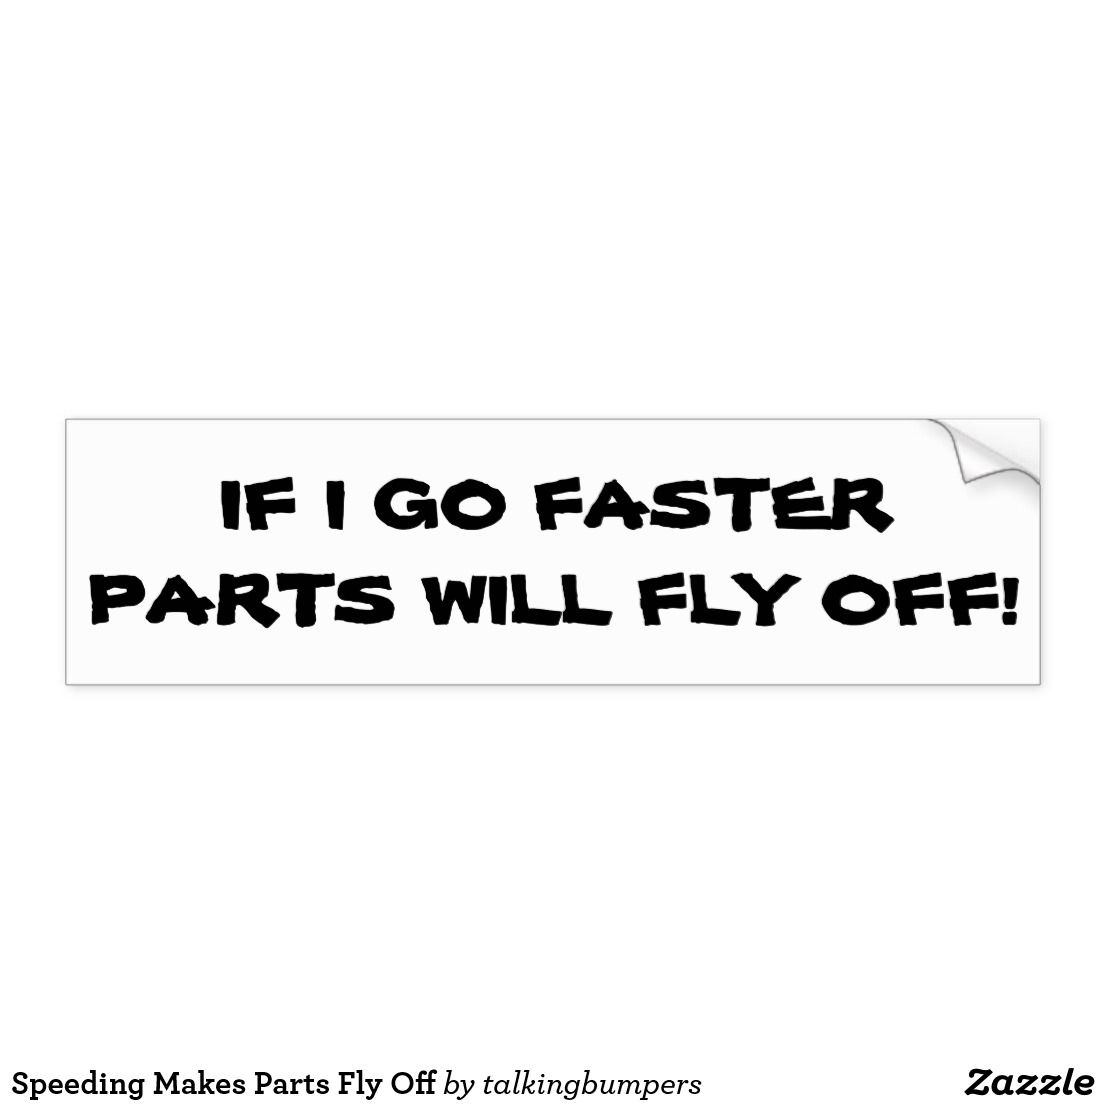 Speeding makes parts fly off bumper sticker give a smile to the other drivers on the road with a funny or smart bumper sticker from my store find the